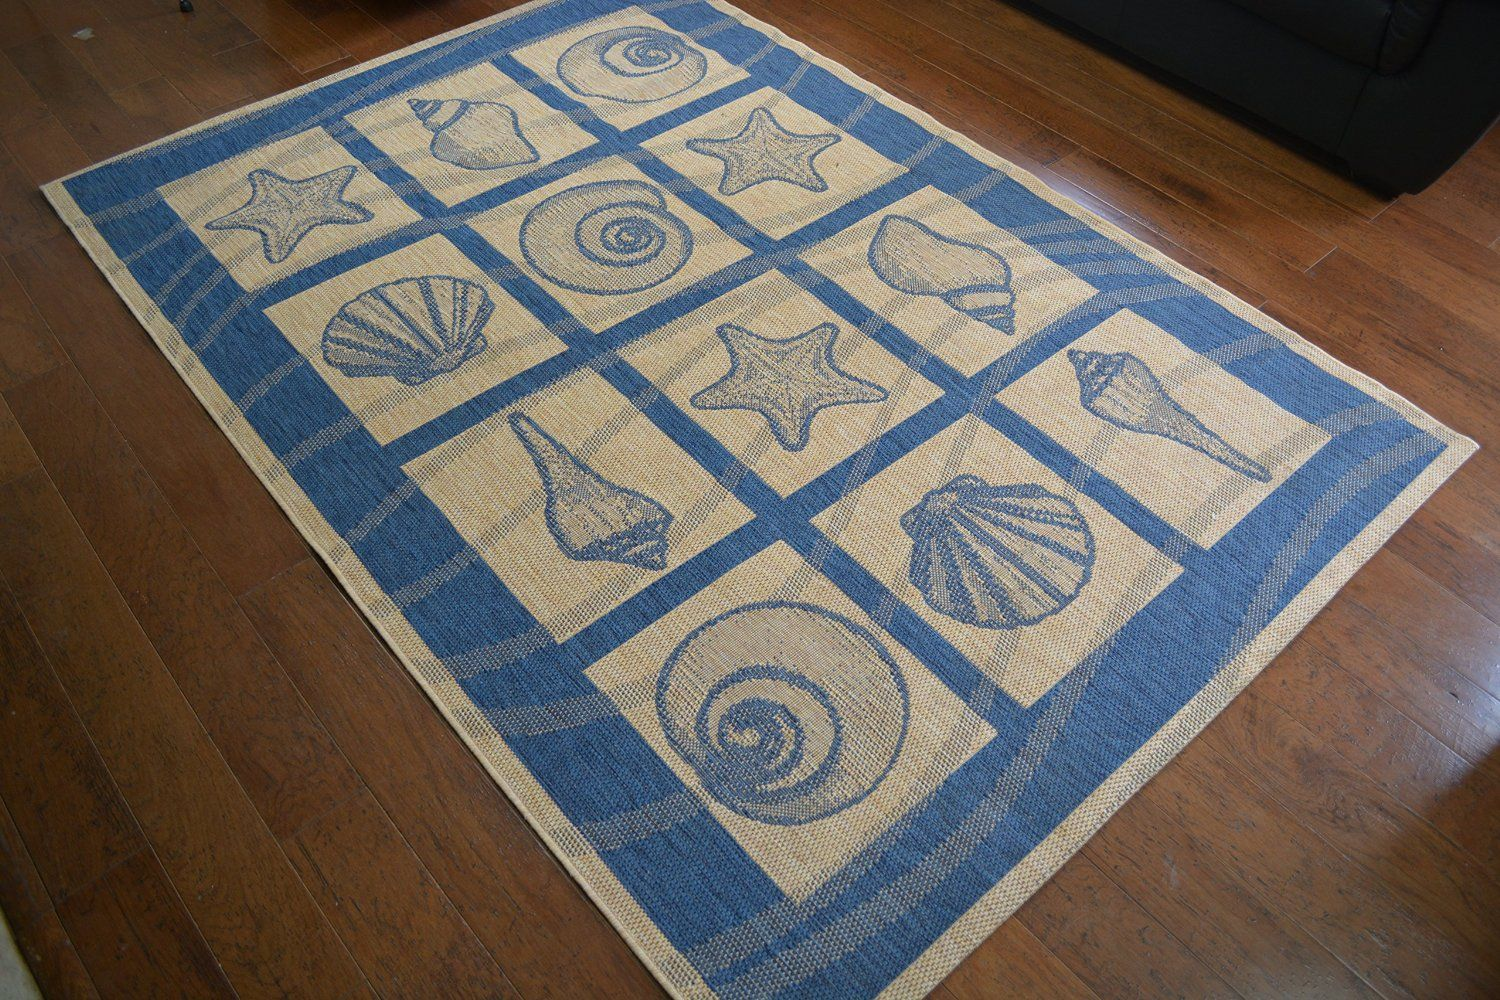 Coastal Seashell Indoor/Outdoor Blue Ivory Area Rug.  Perfect for your coastal or beach home.